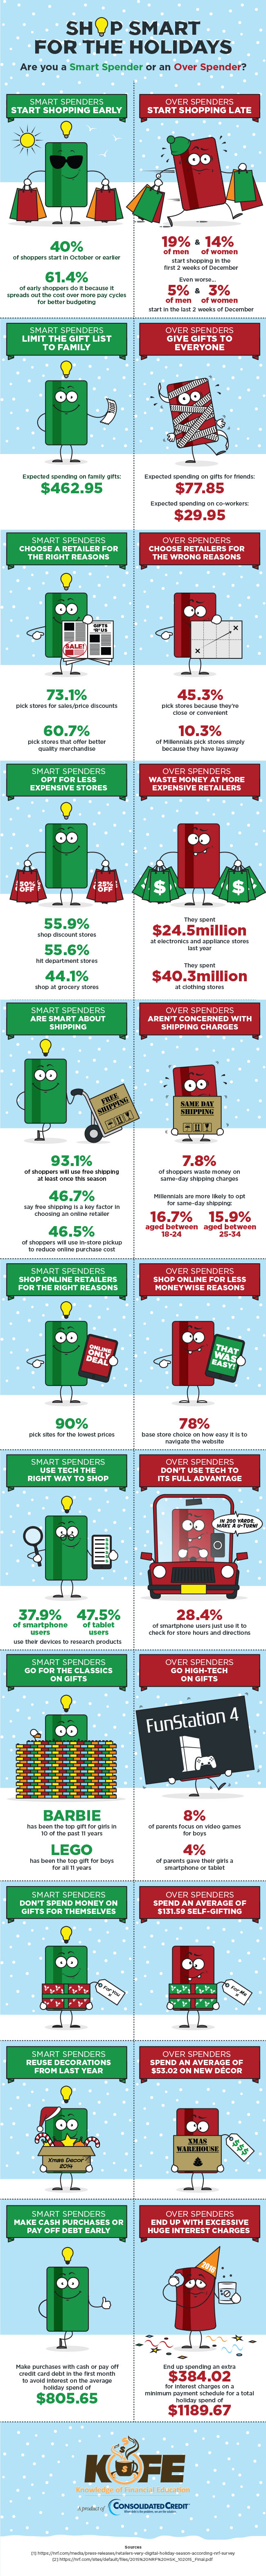 Shop Smart for the Holidays infographic